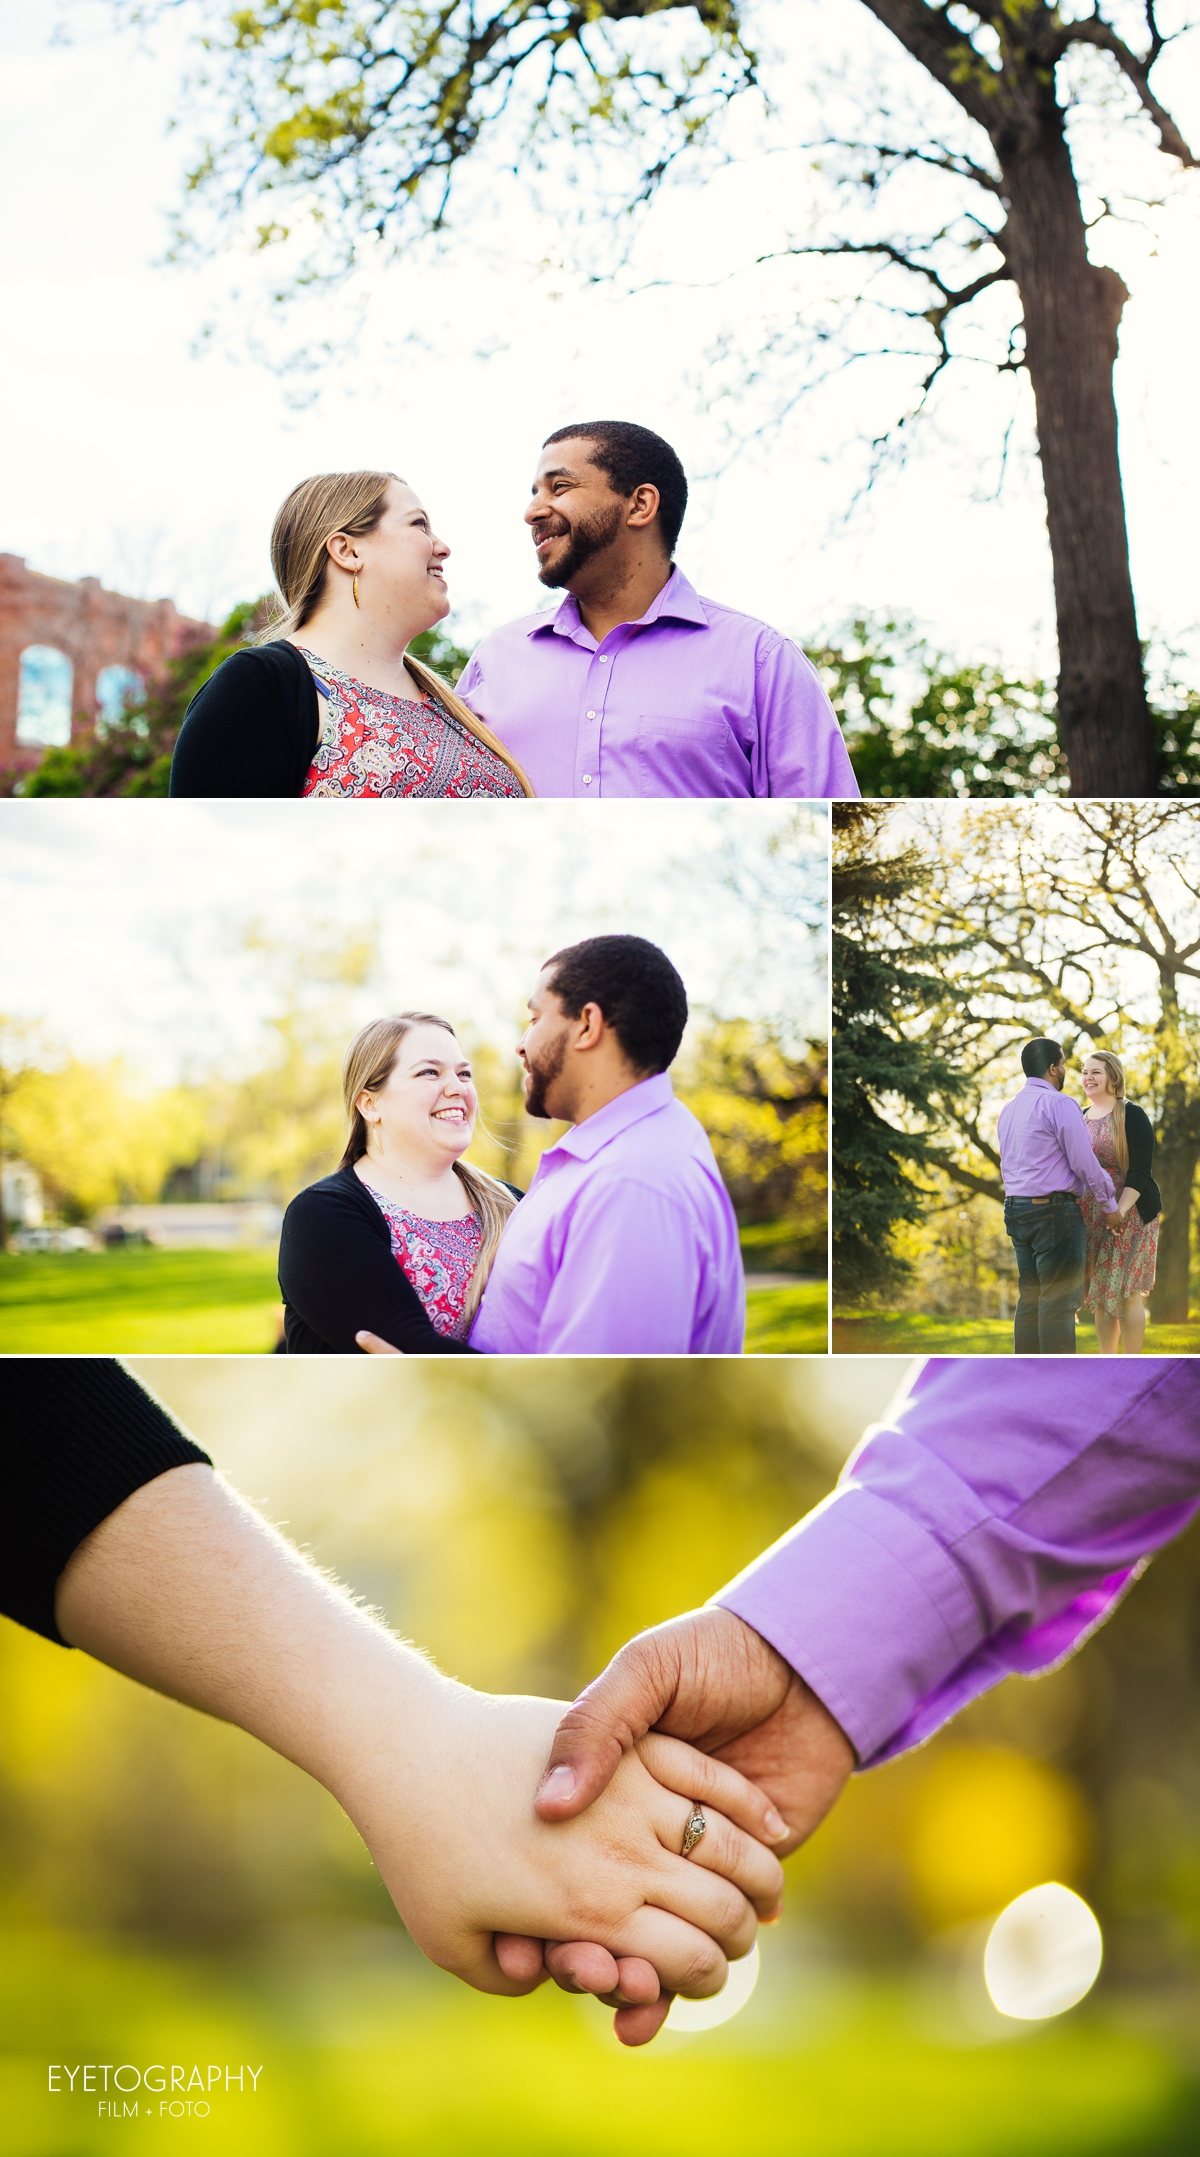 St. Paul Engagement Photography | Eyetography Film + Foto | Emily + Nate 1